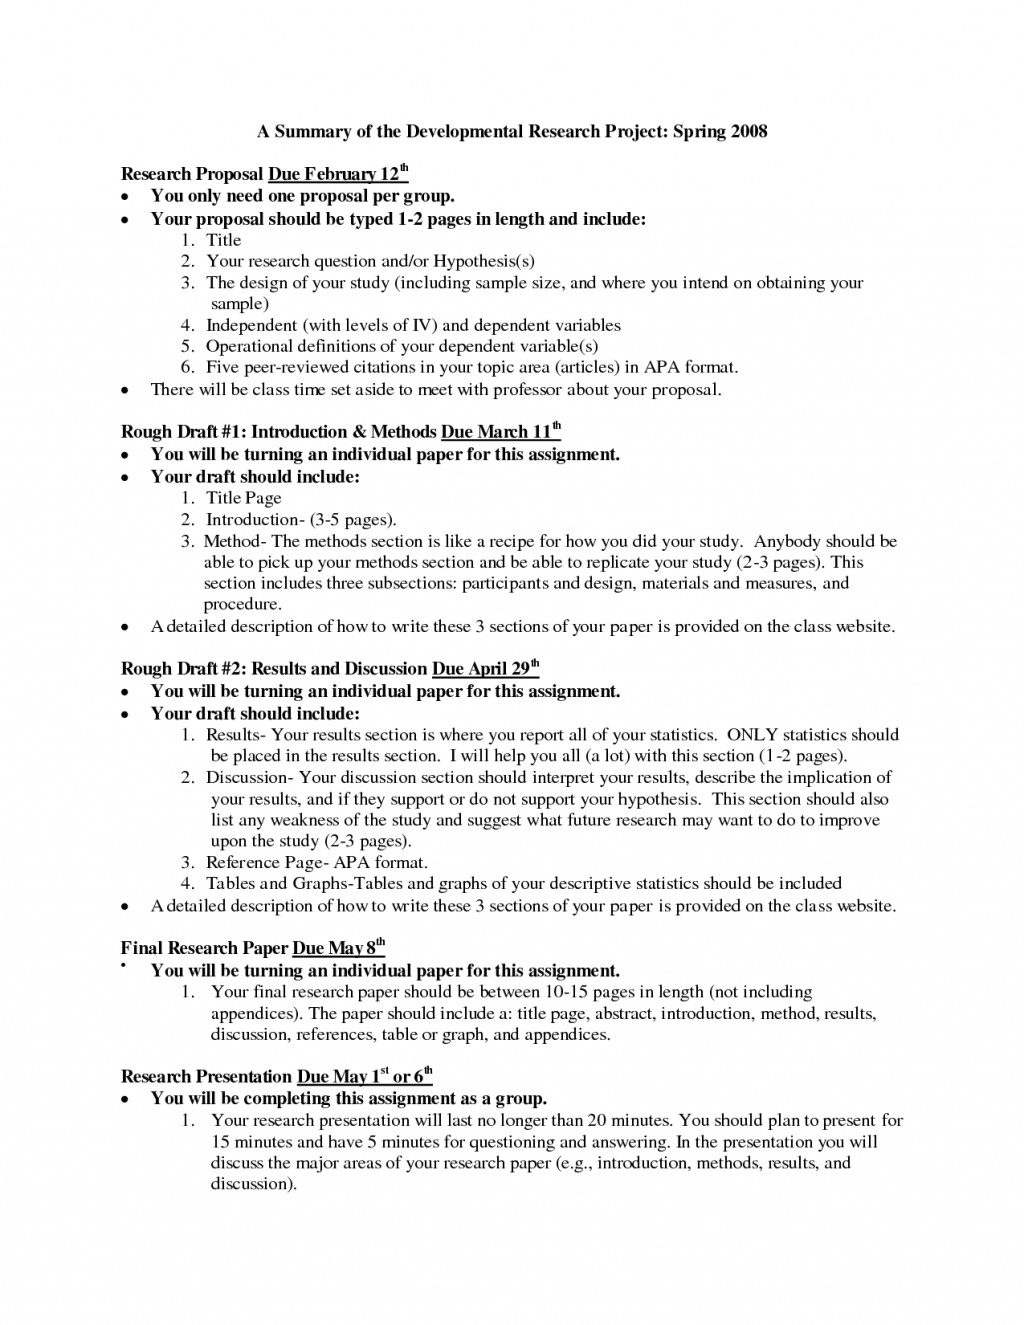 012 Good Research Paper Topic Psychology Undergraduate Resume Unique Sample Singular Topics About Sports For Sociology High School Students In The Philippines Large